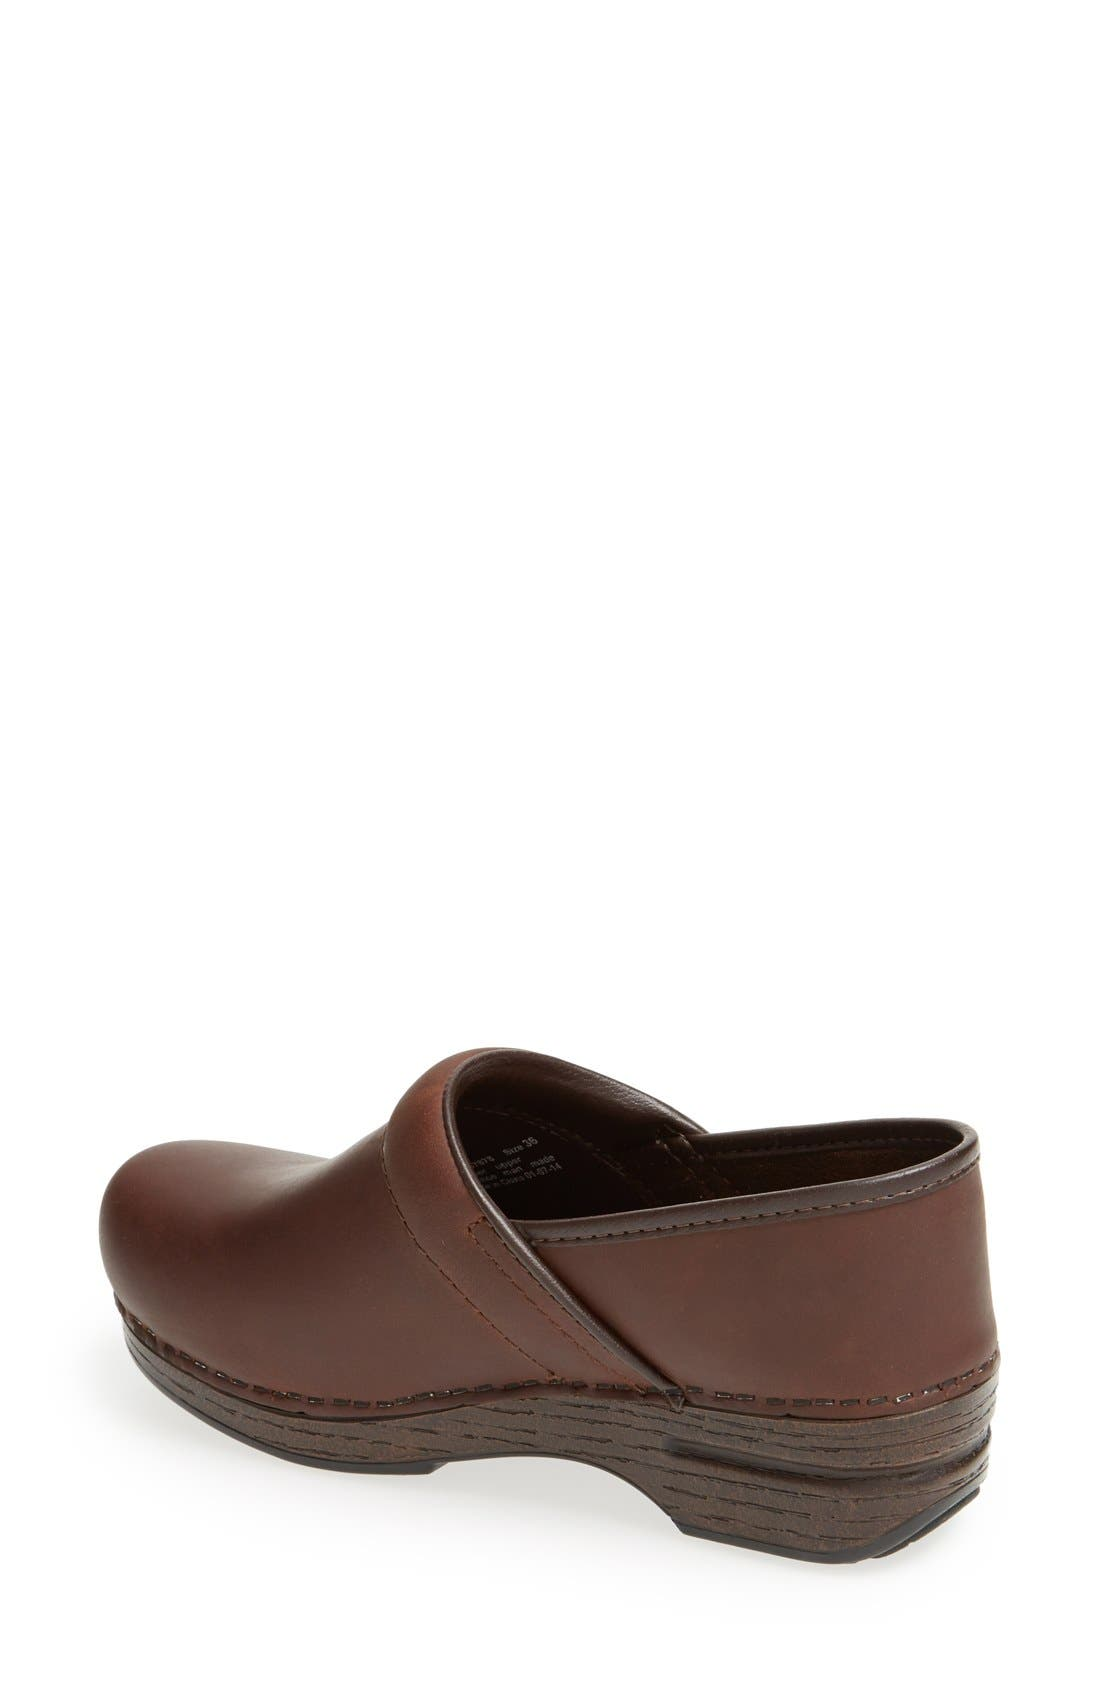 'Pro XP' Clog,                             Alternate thumbnail 2, color,                             BROWN OILED